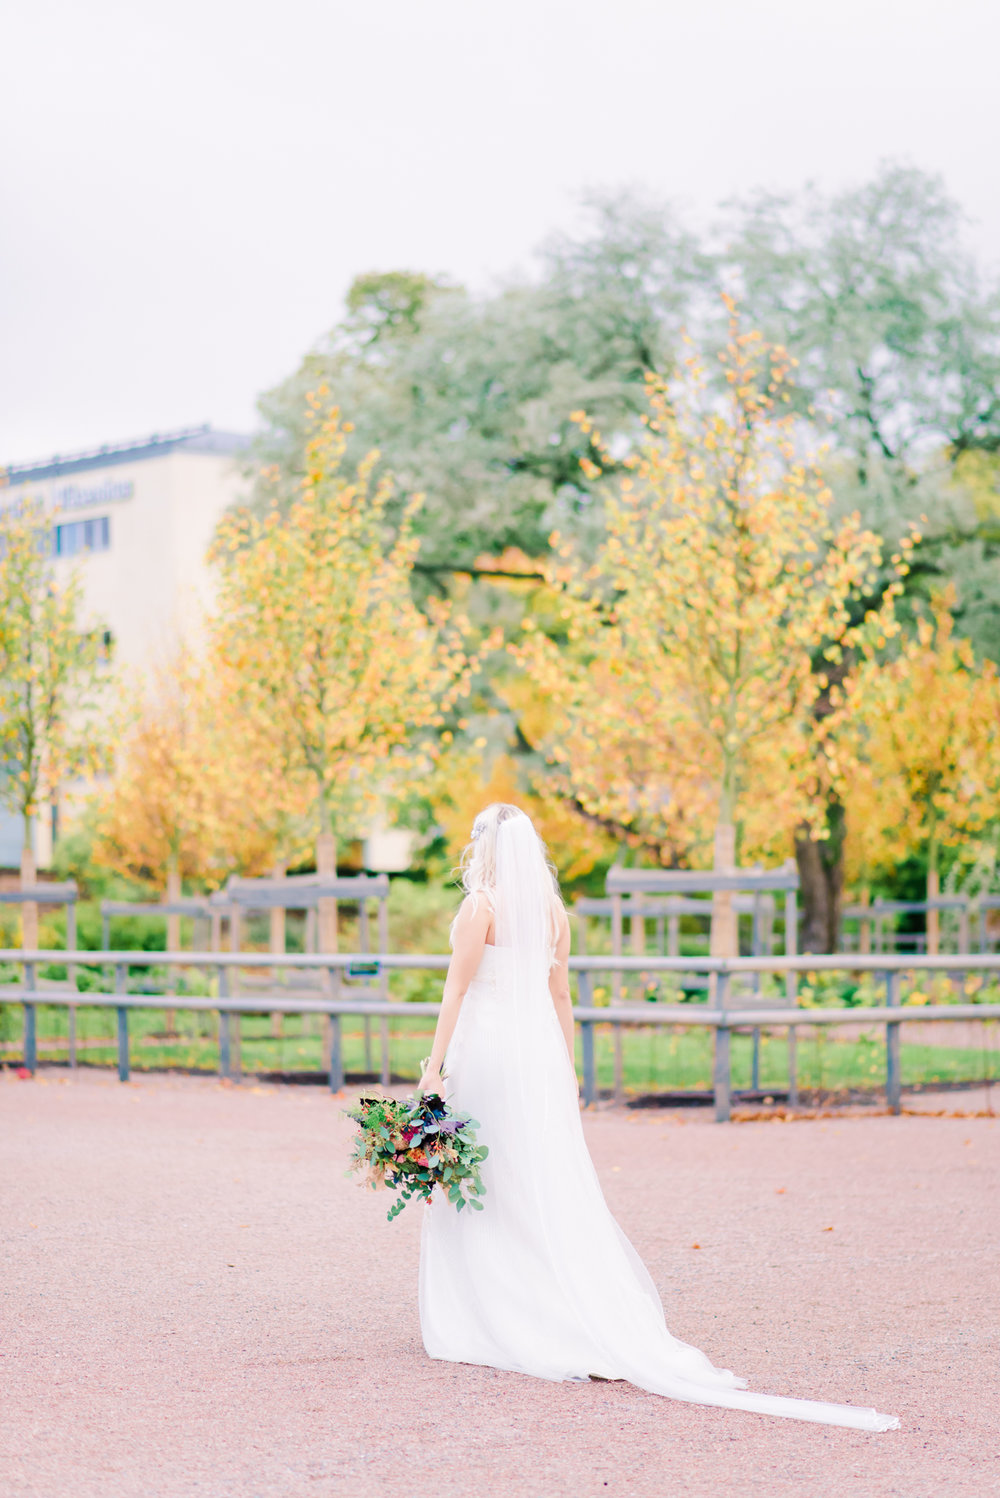 Elegant Organic Fall Swedish Bridal Wedding Styled Shoot - Erika Alvarenga Photography-52.jpg